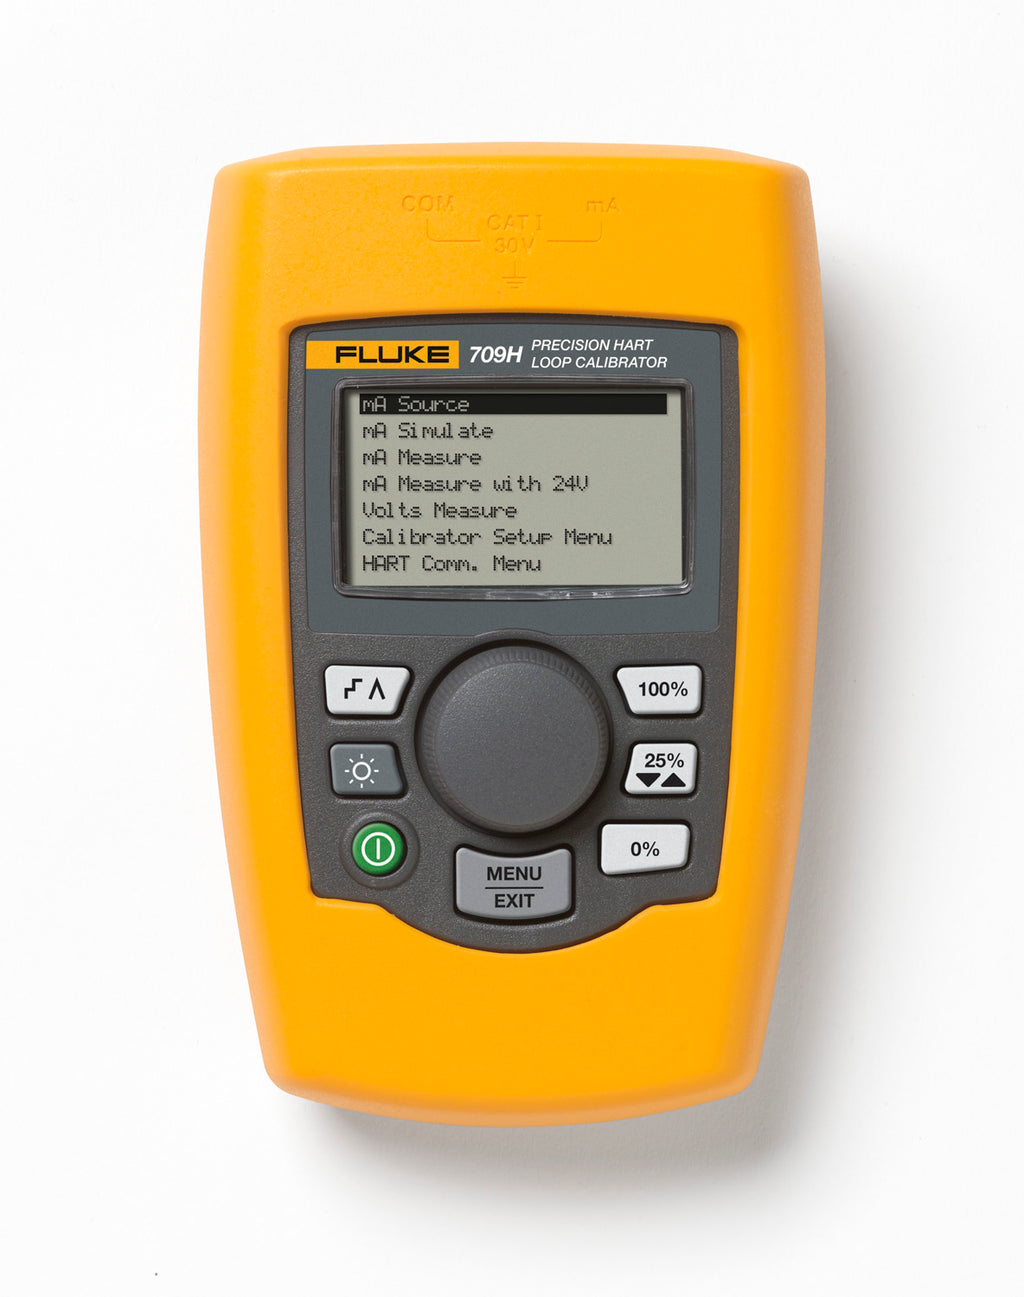 Fluke 709H Precision mA Loop Calibrator with HART